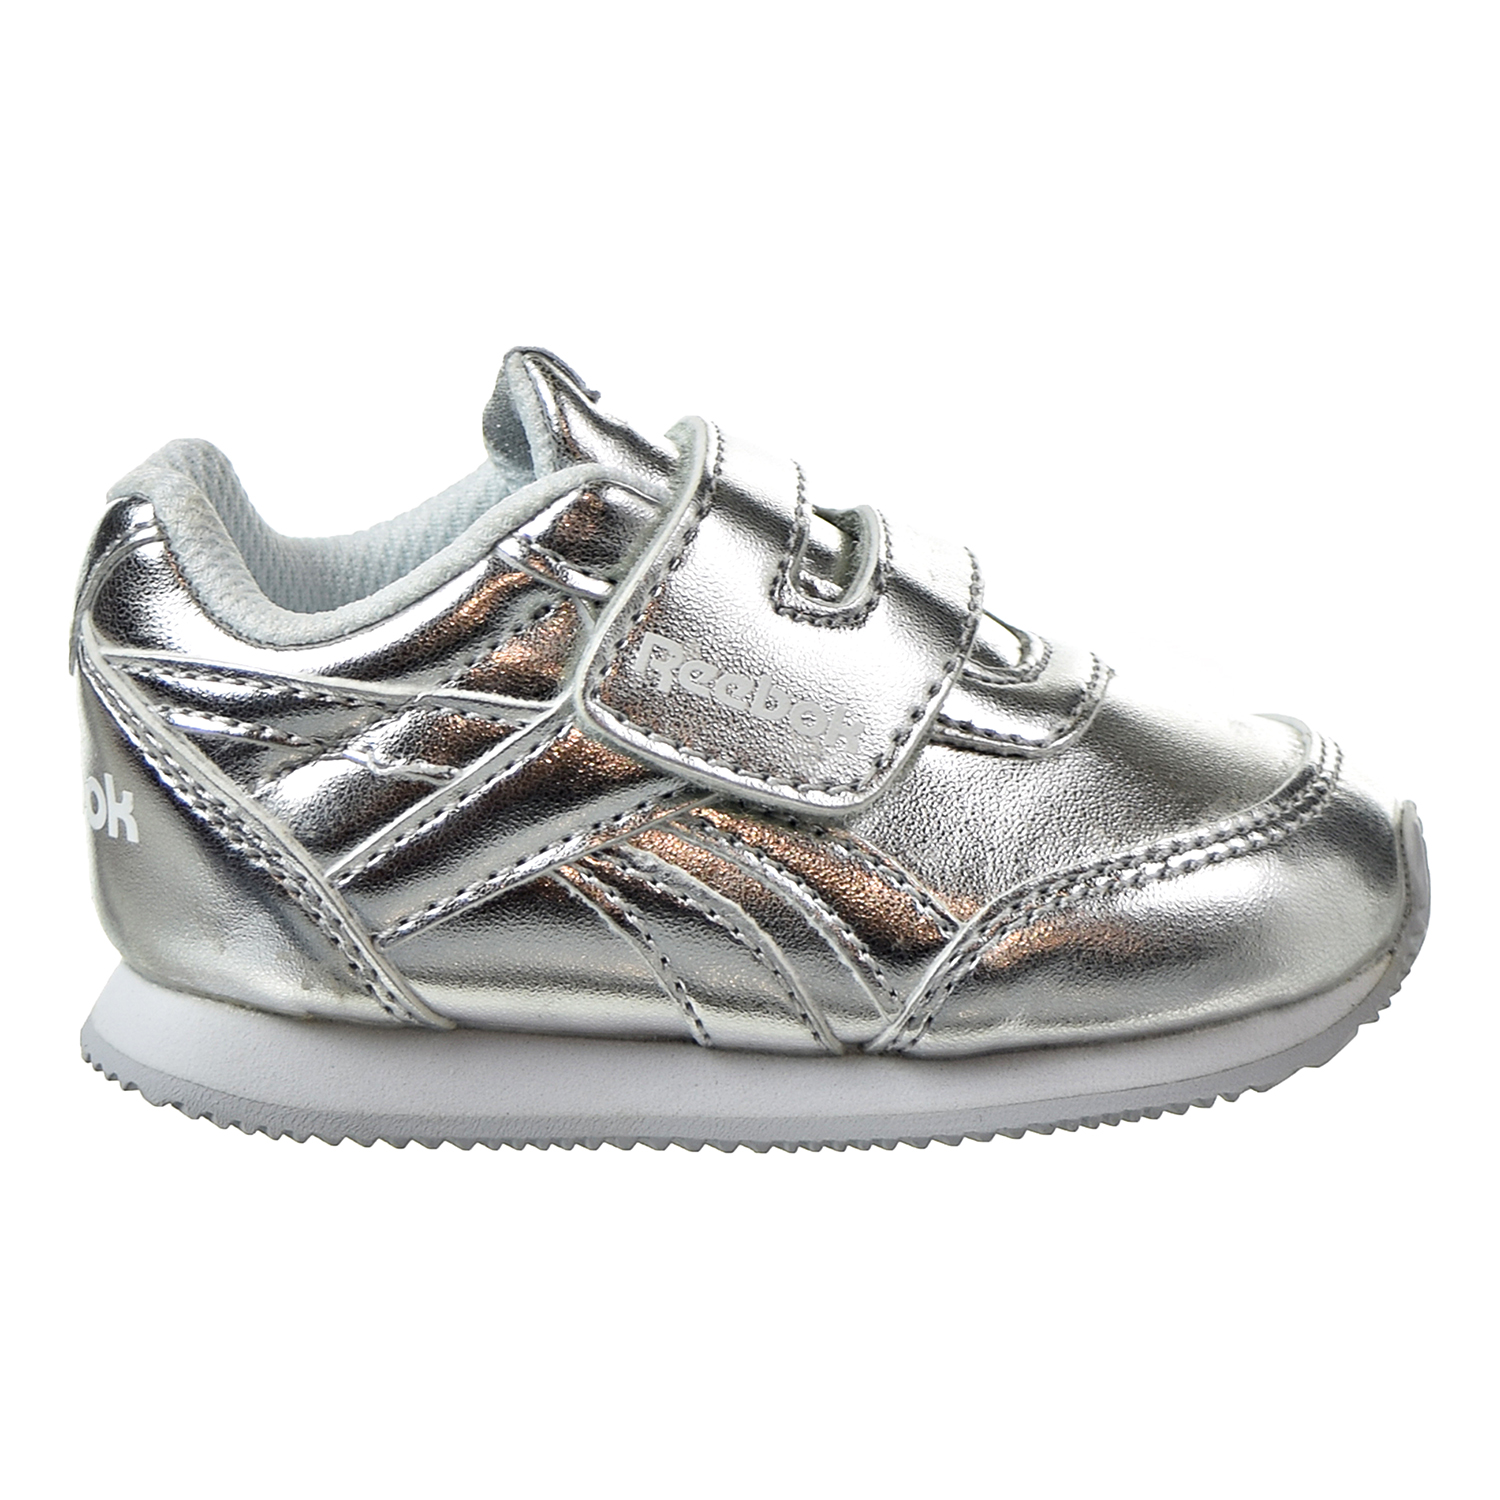 60f39d9507 Details about Reebok Royal Classic Toddler's Jogger 2.0 KC Shoes Silver  Metallic/White CN1345